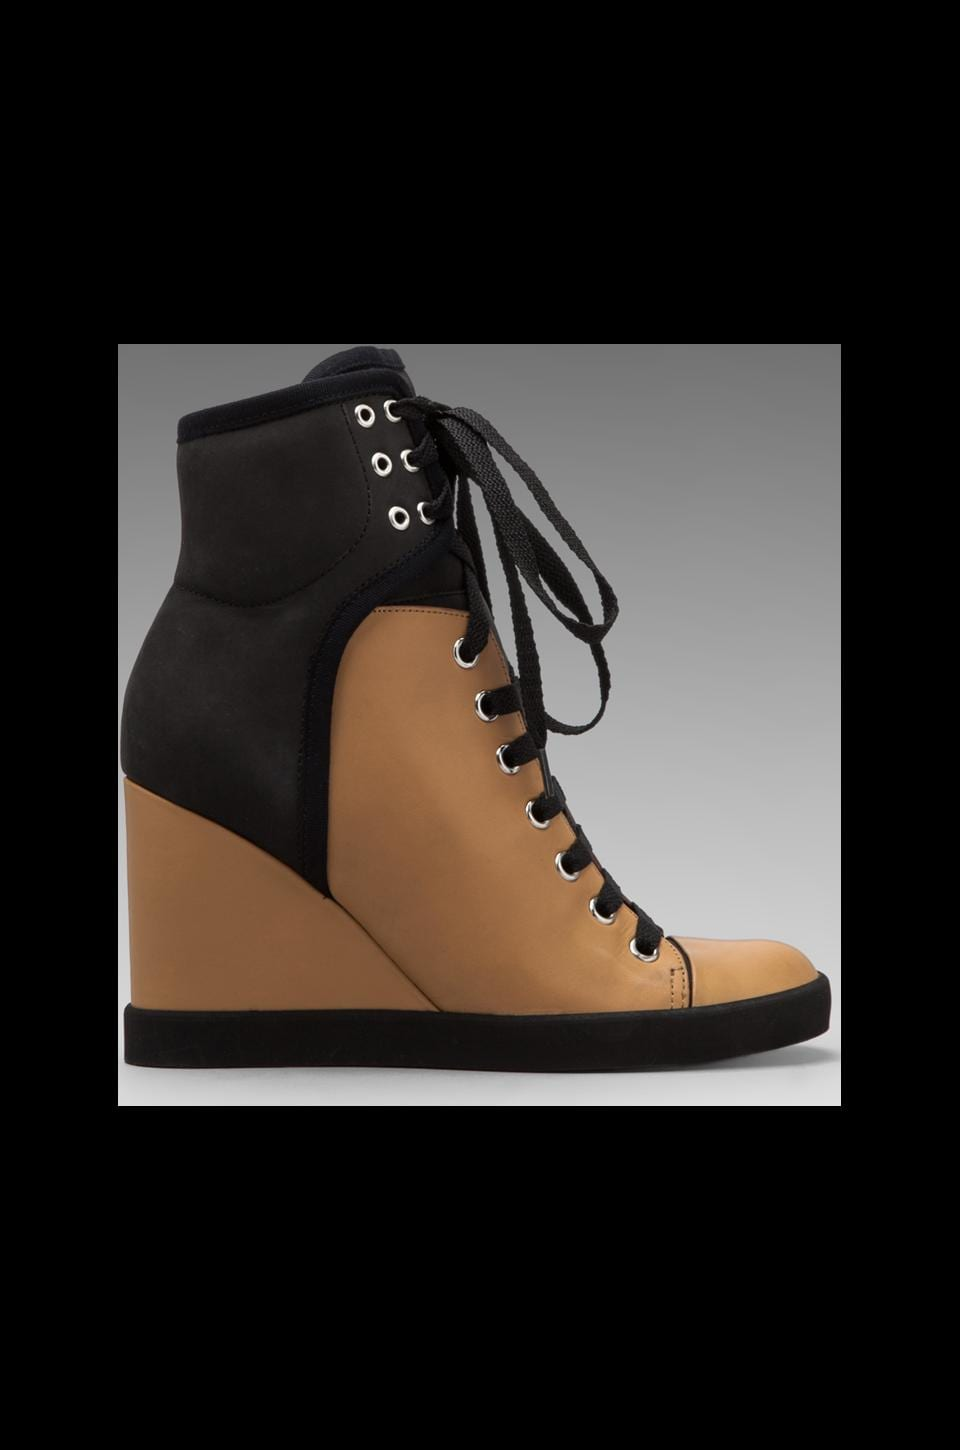 See By Chloe Sneaker Wedge in Tan/Black